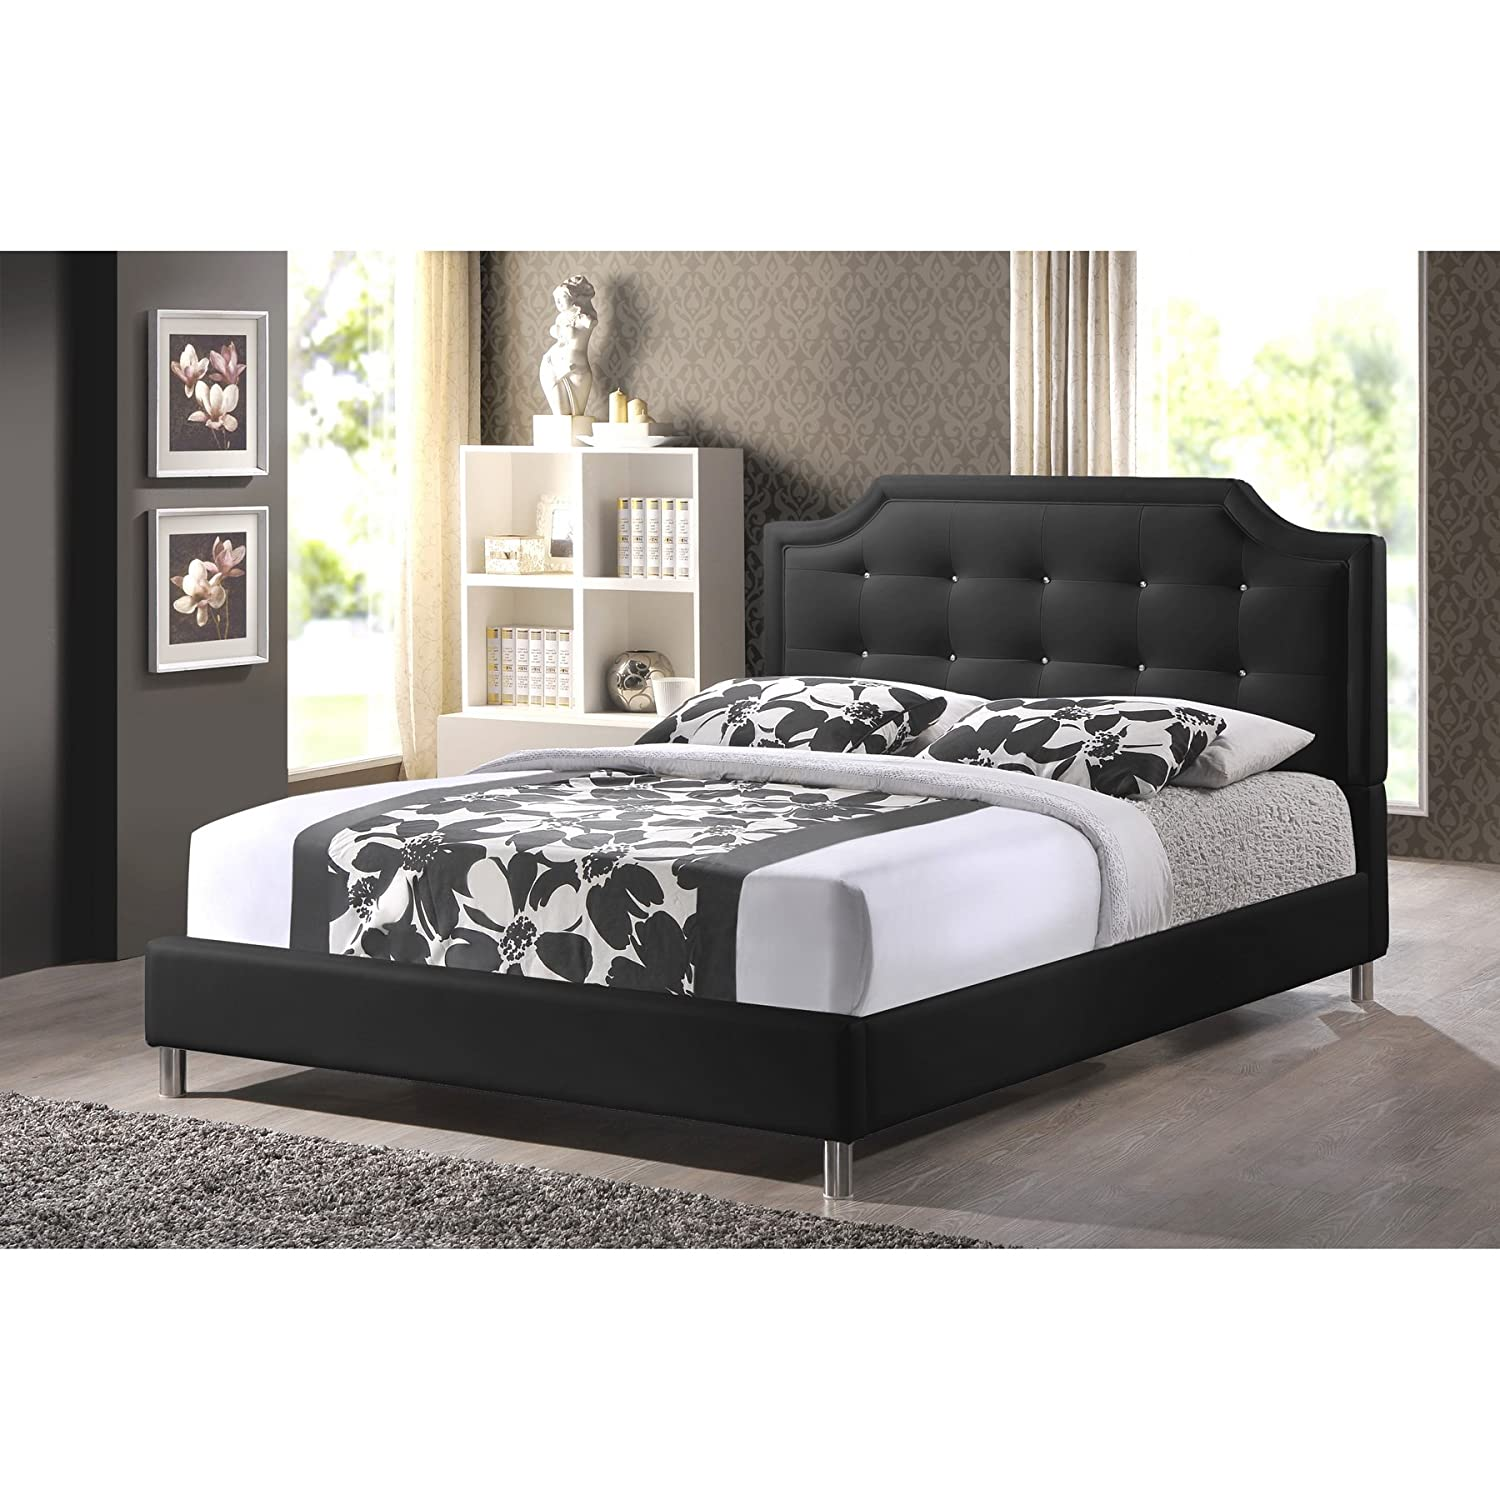 Amazon.com: Baxton Studio Carlotta Modern Bed with Upholstered ...